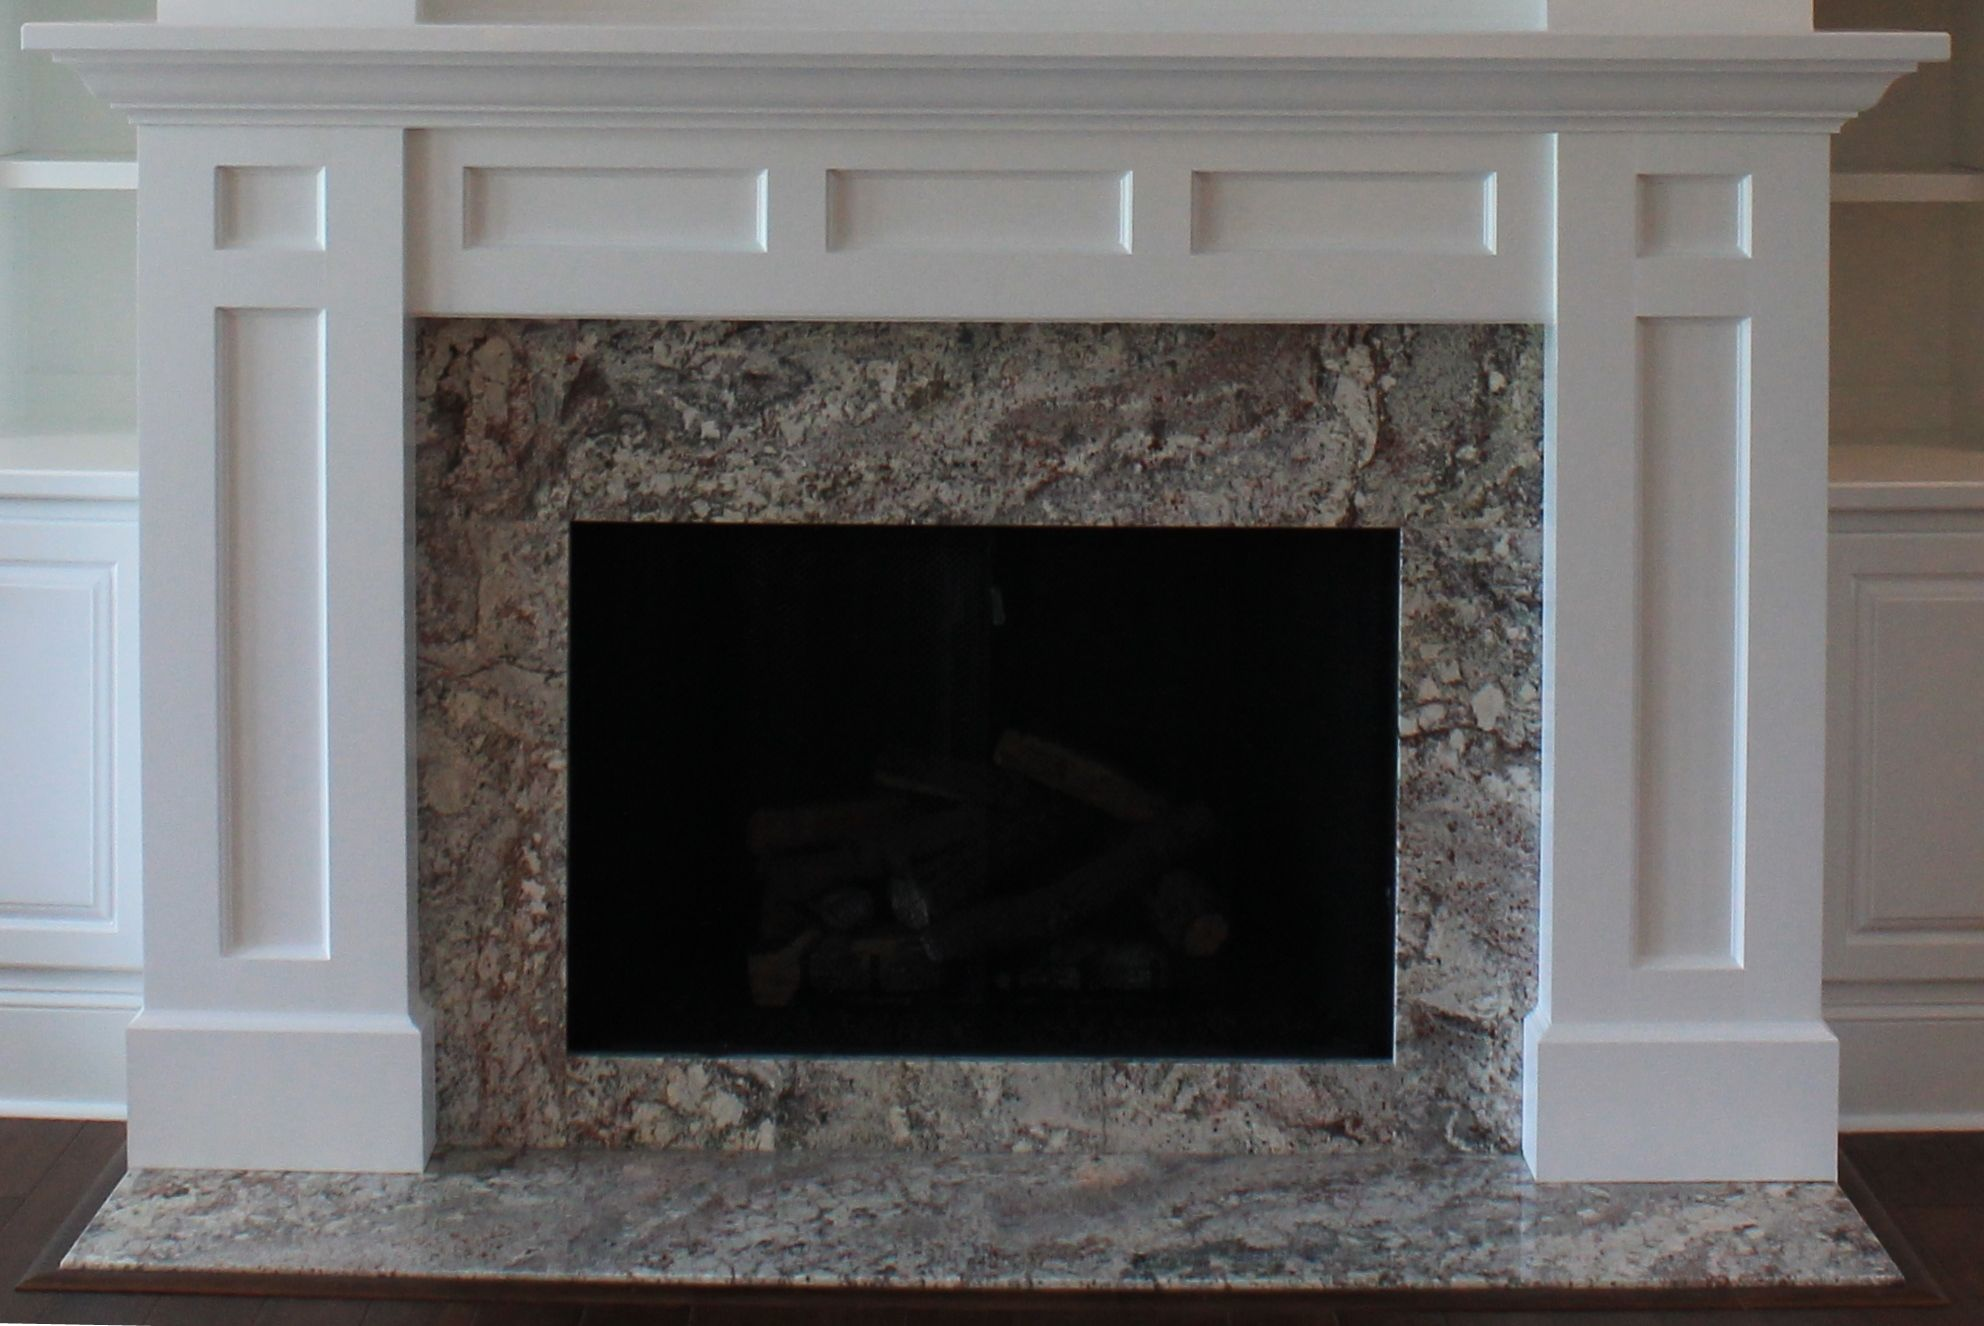 Fireplace Mantels Atlanta A Atlanta Mantel Shown With Granite Surround And Flush Hearth